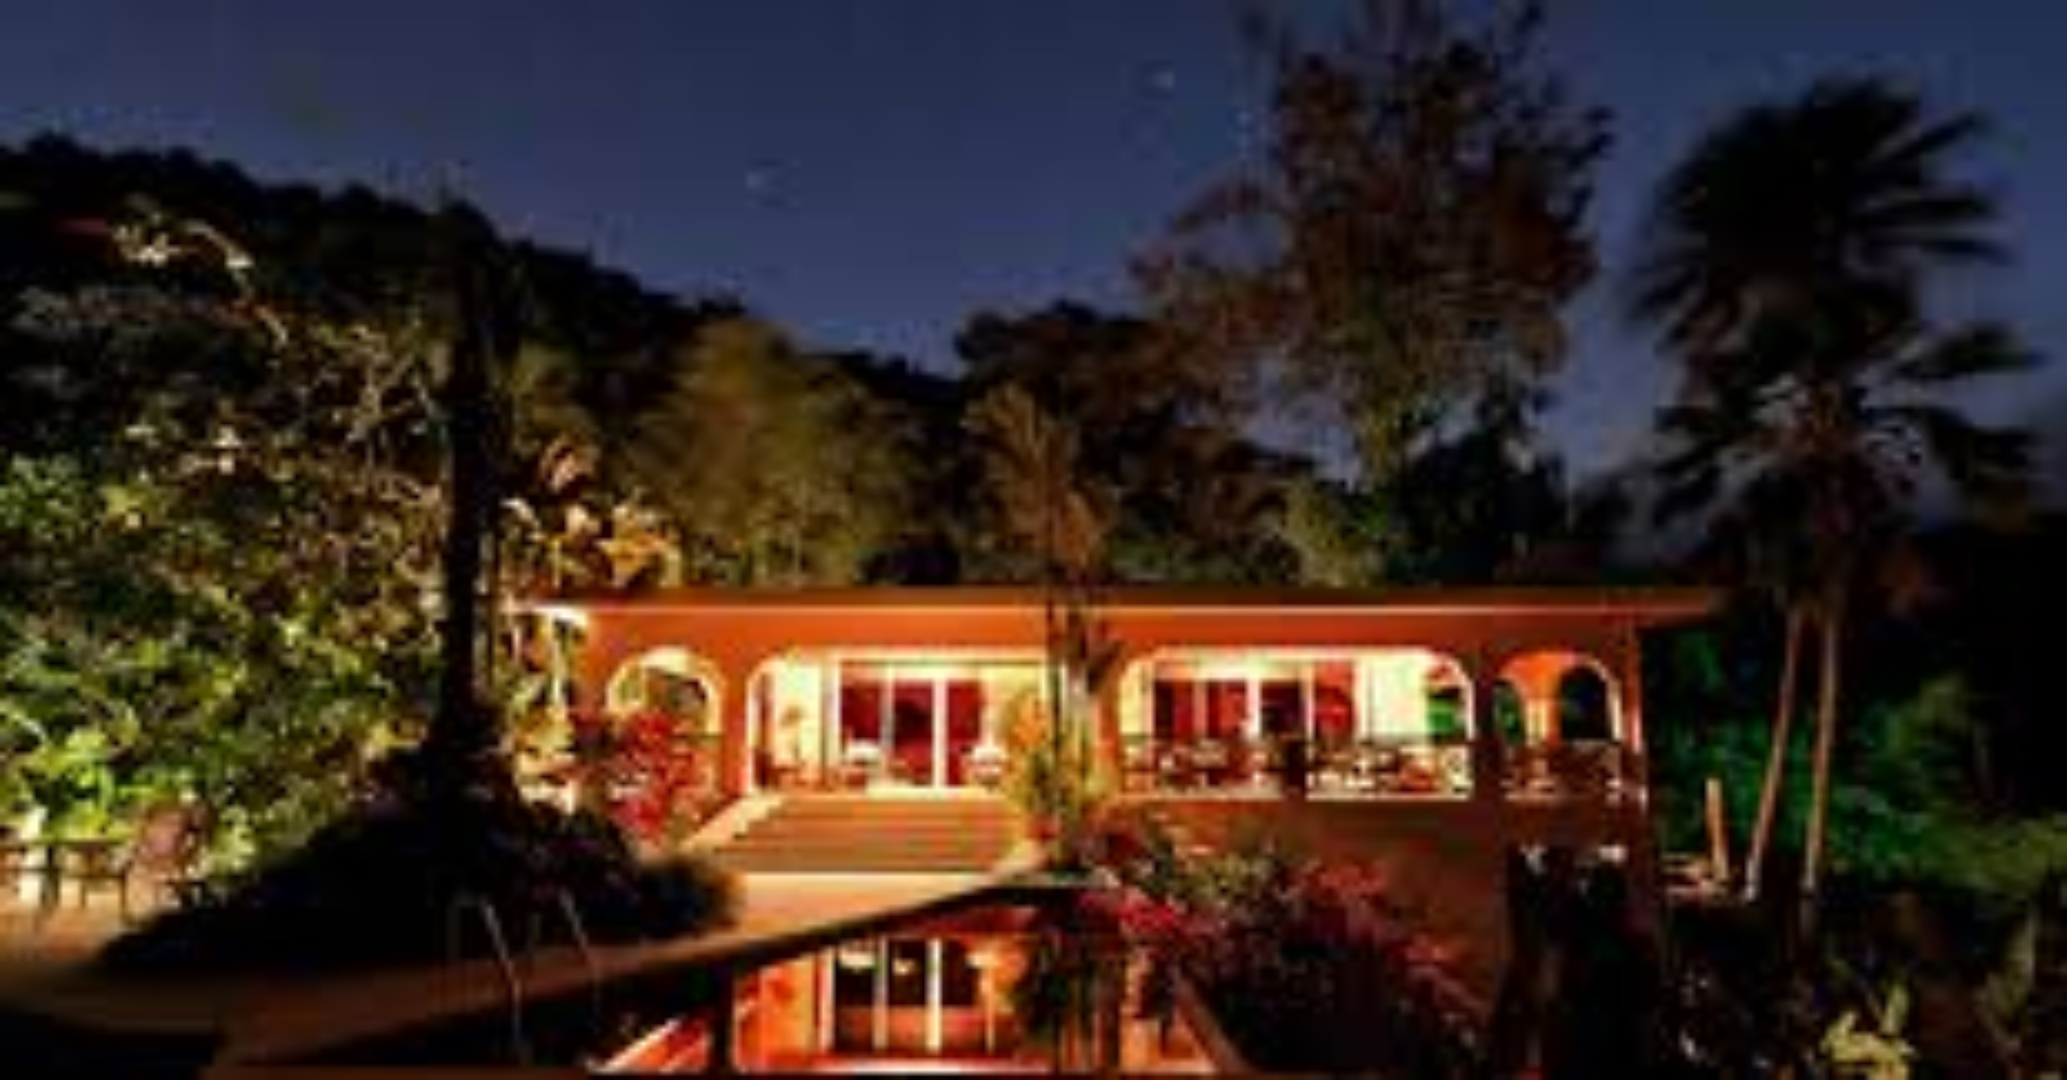 A house with trees in the background at Casa Flamboyant.